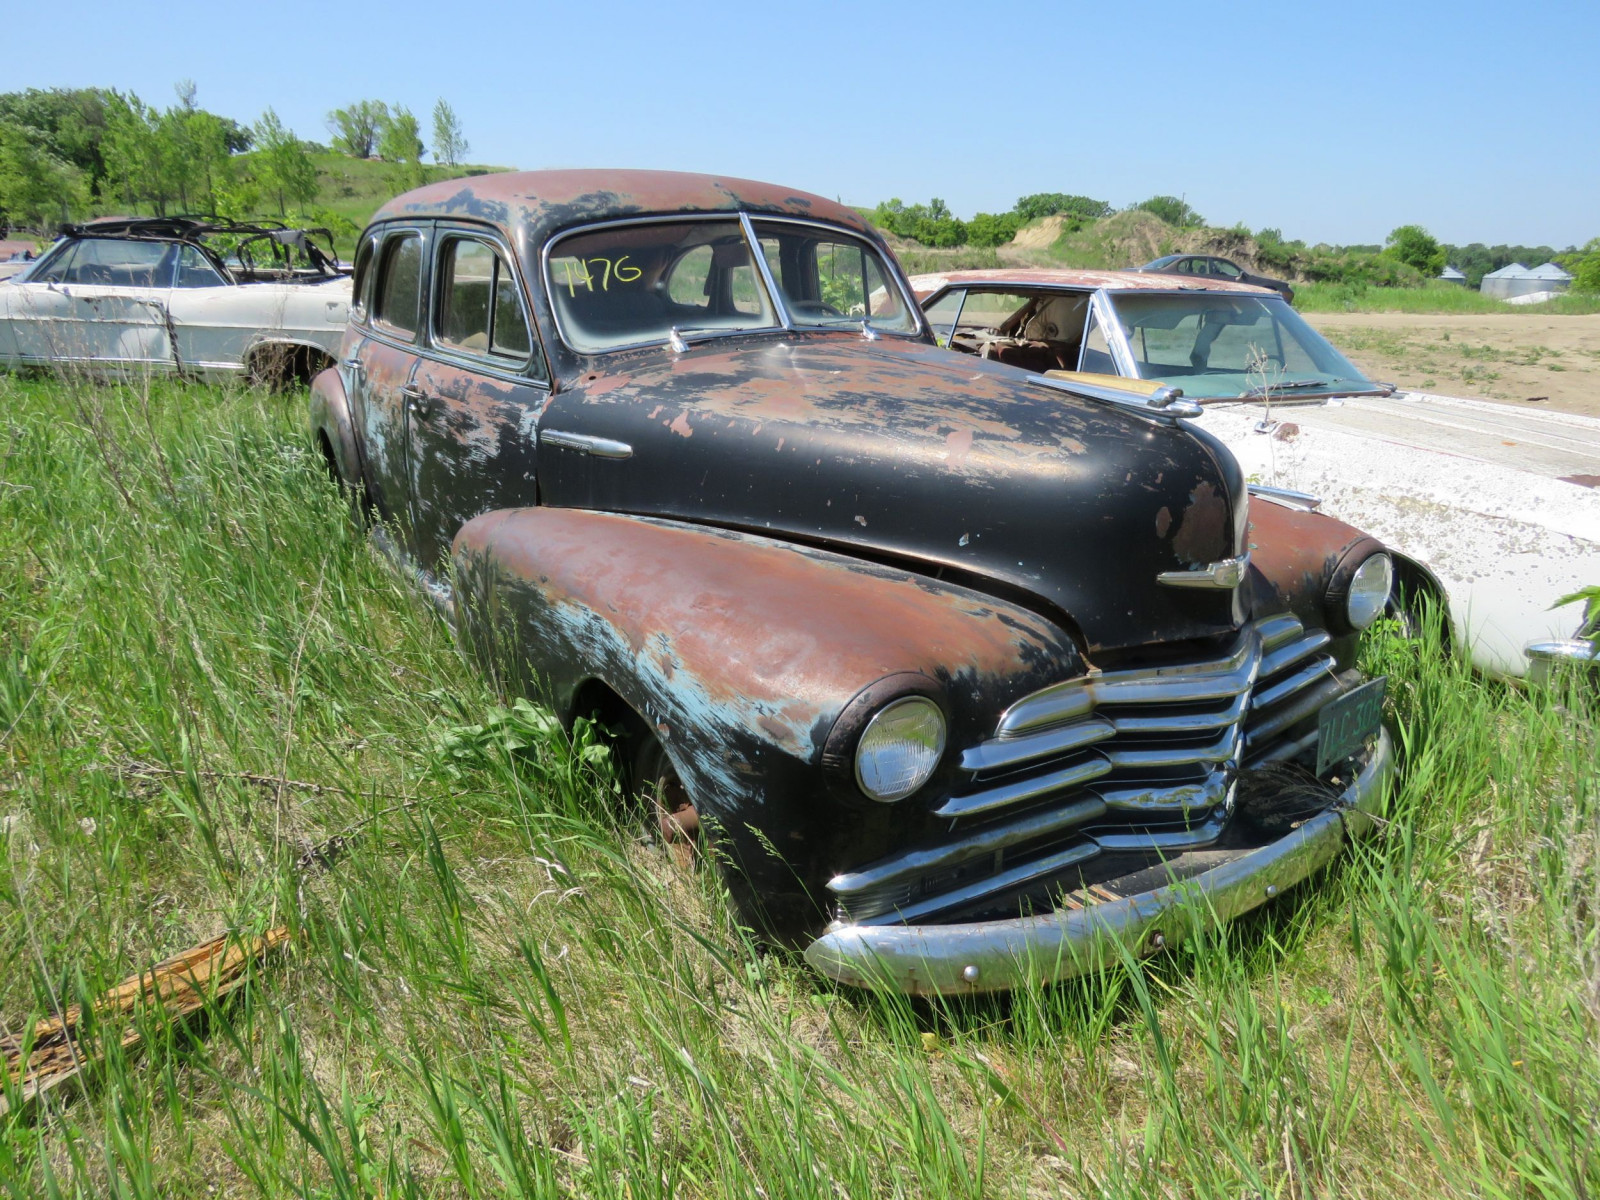 1947 Chevrolet Fleet master 4dr Sedan for Project or parts - Image 1